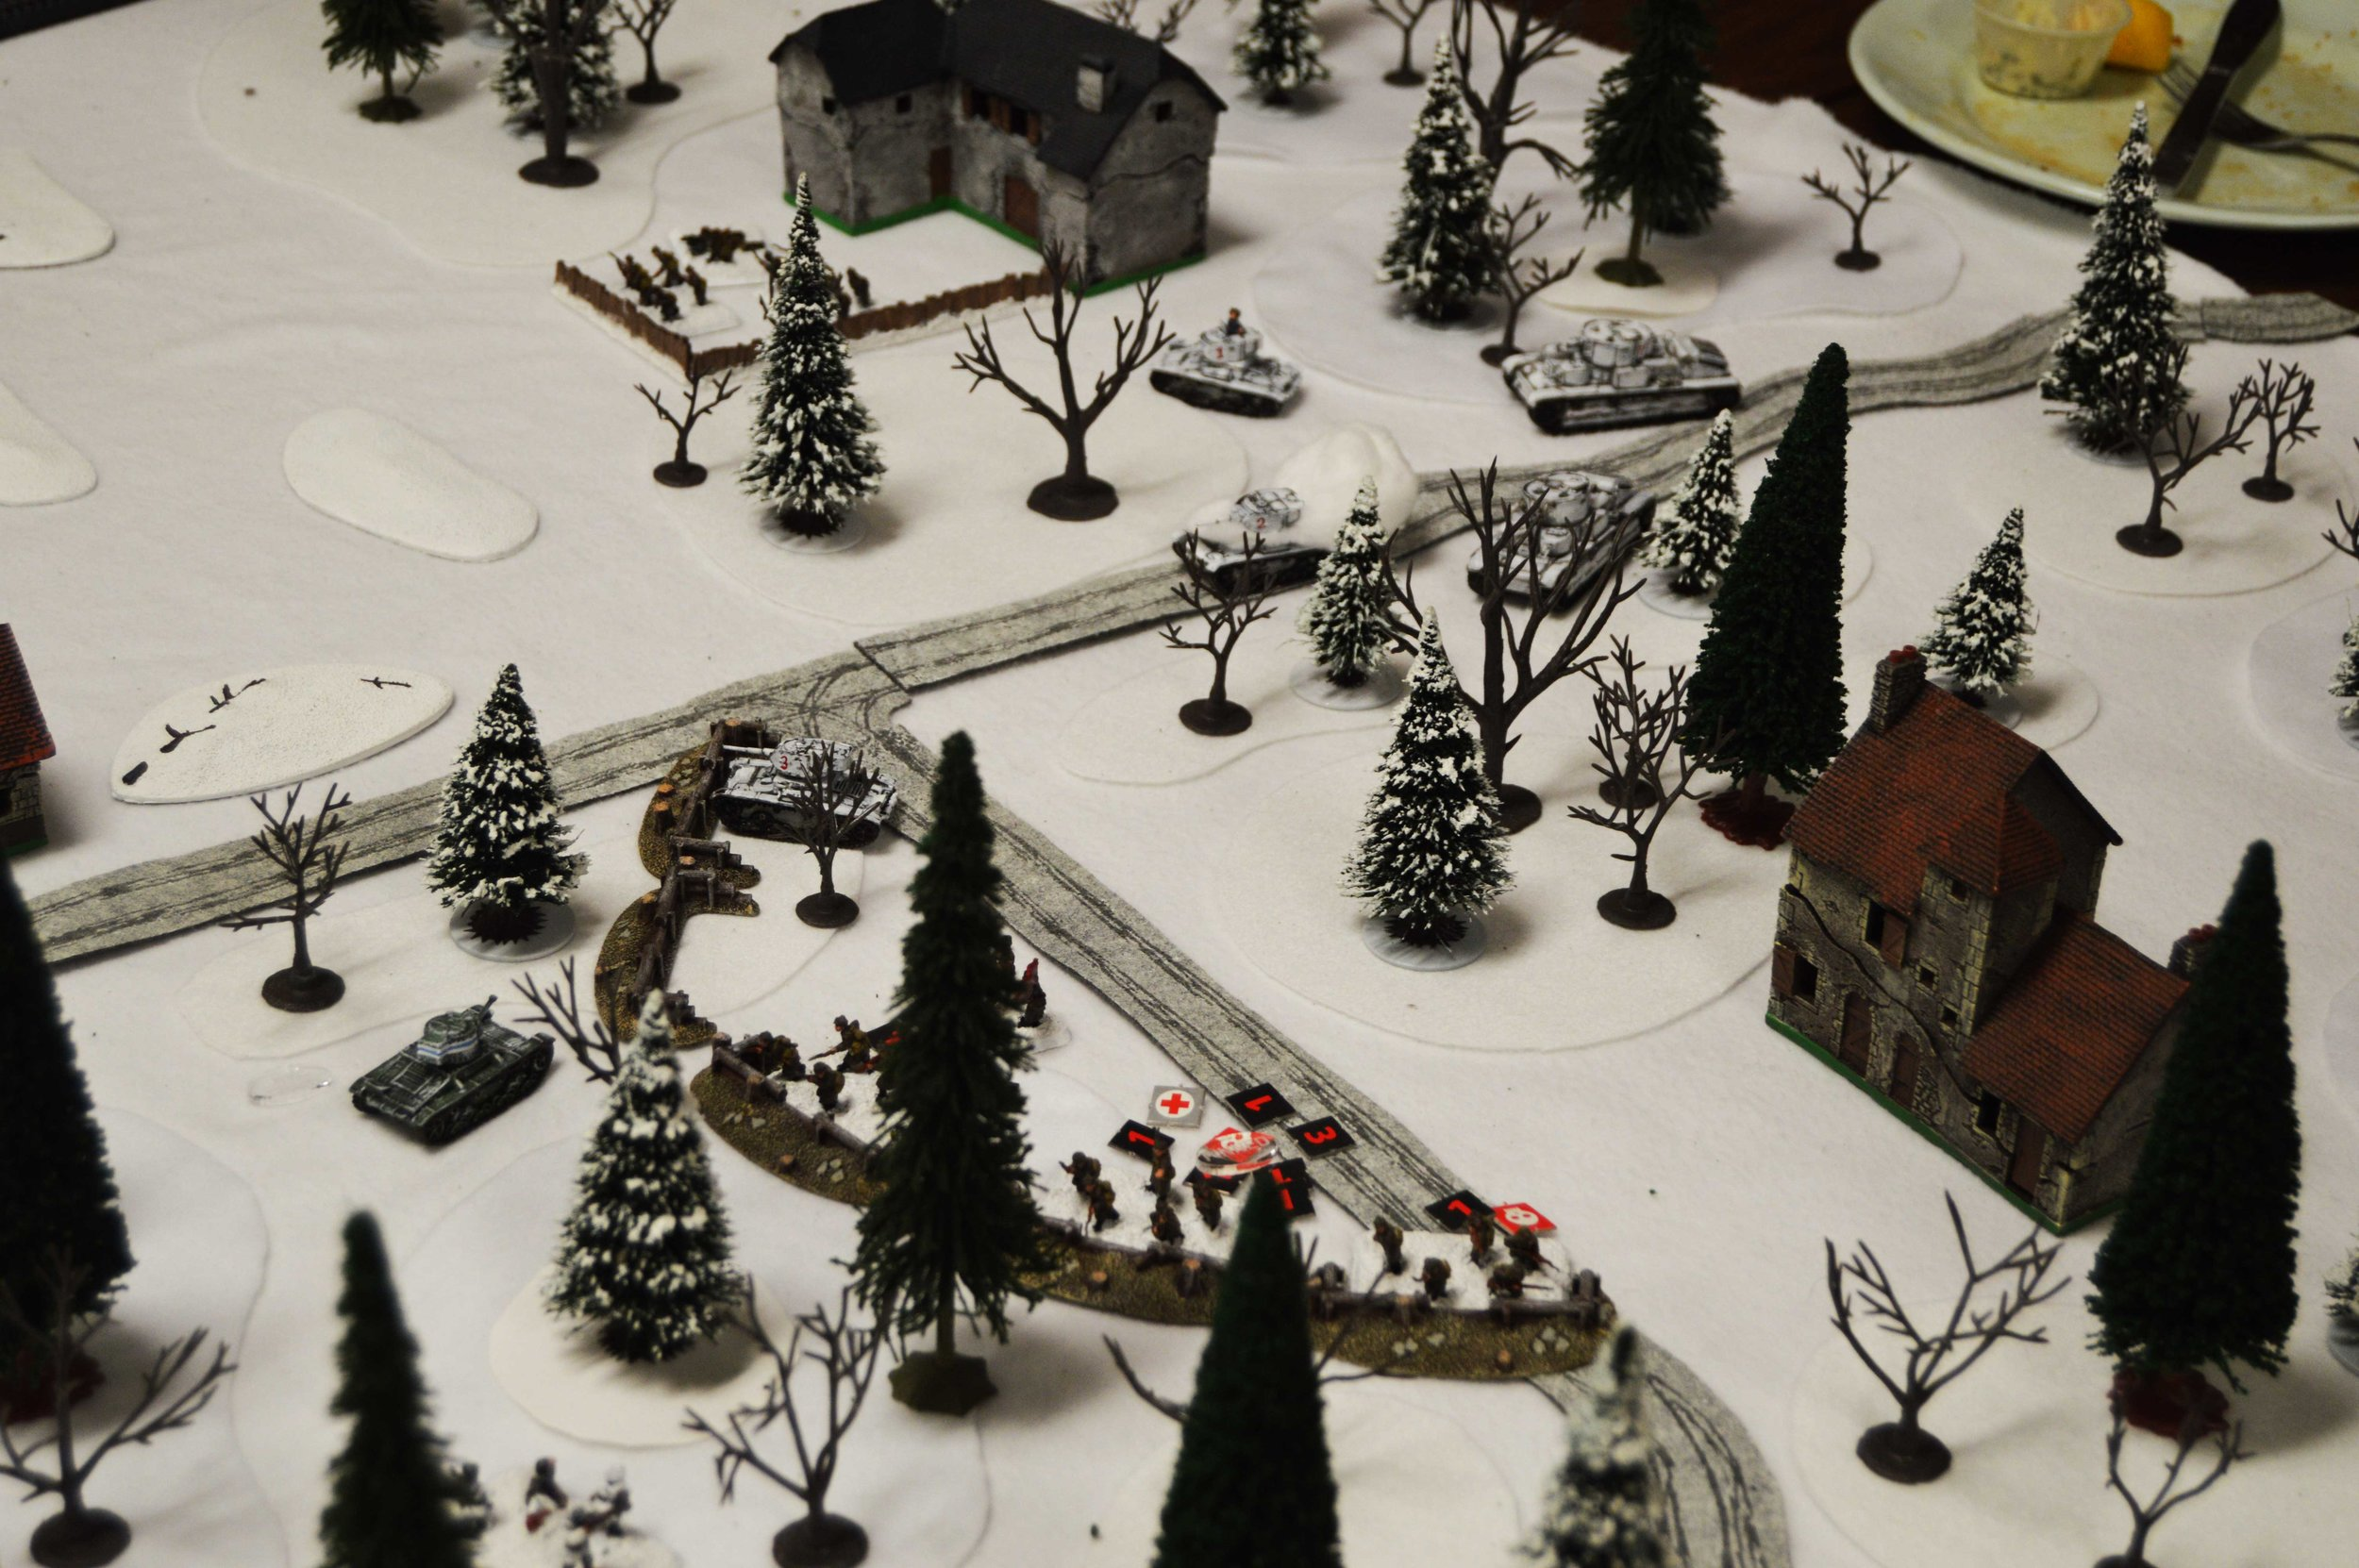 A Finnish Vickers tank makes a daring move to outflank the nearest T-26, while the Finnish infantry advance on the trench line. Unfortunately, more Soviet reinforcements arrive—two T-28 medium tanks.